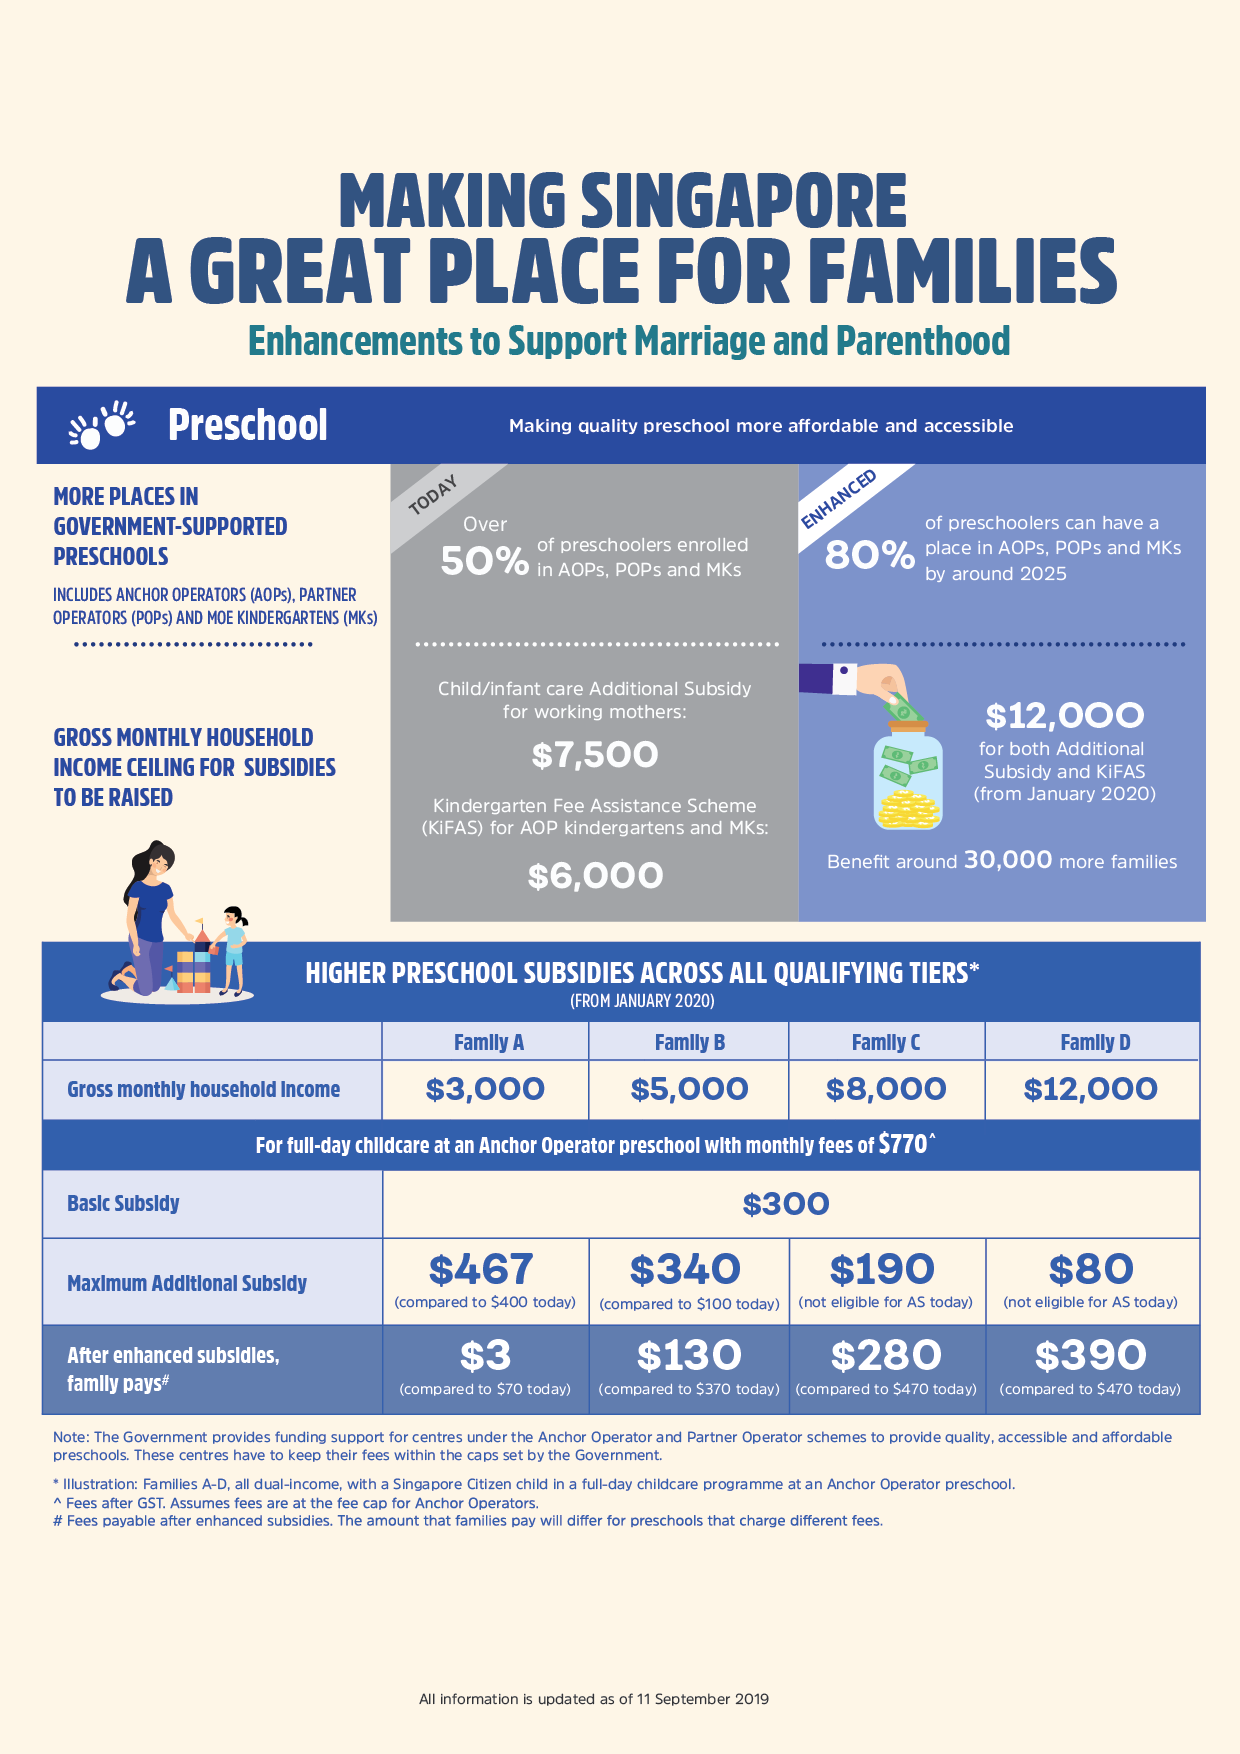 Making Singapore a Great Place for Families cover page